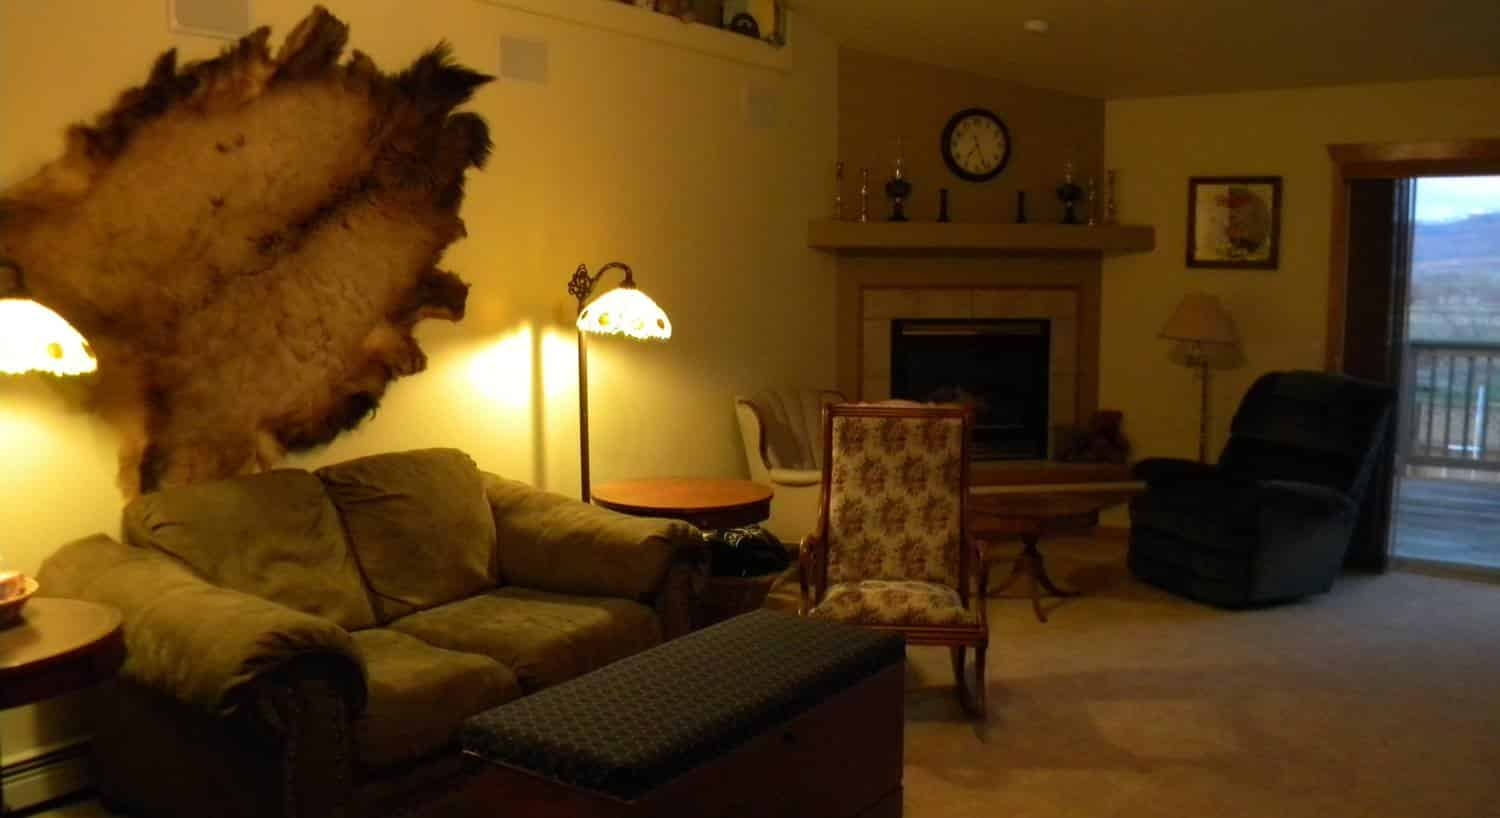 Living area with upholstered love seat, antique chair, fireplace, and animal fur hanging on the wall